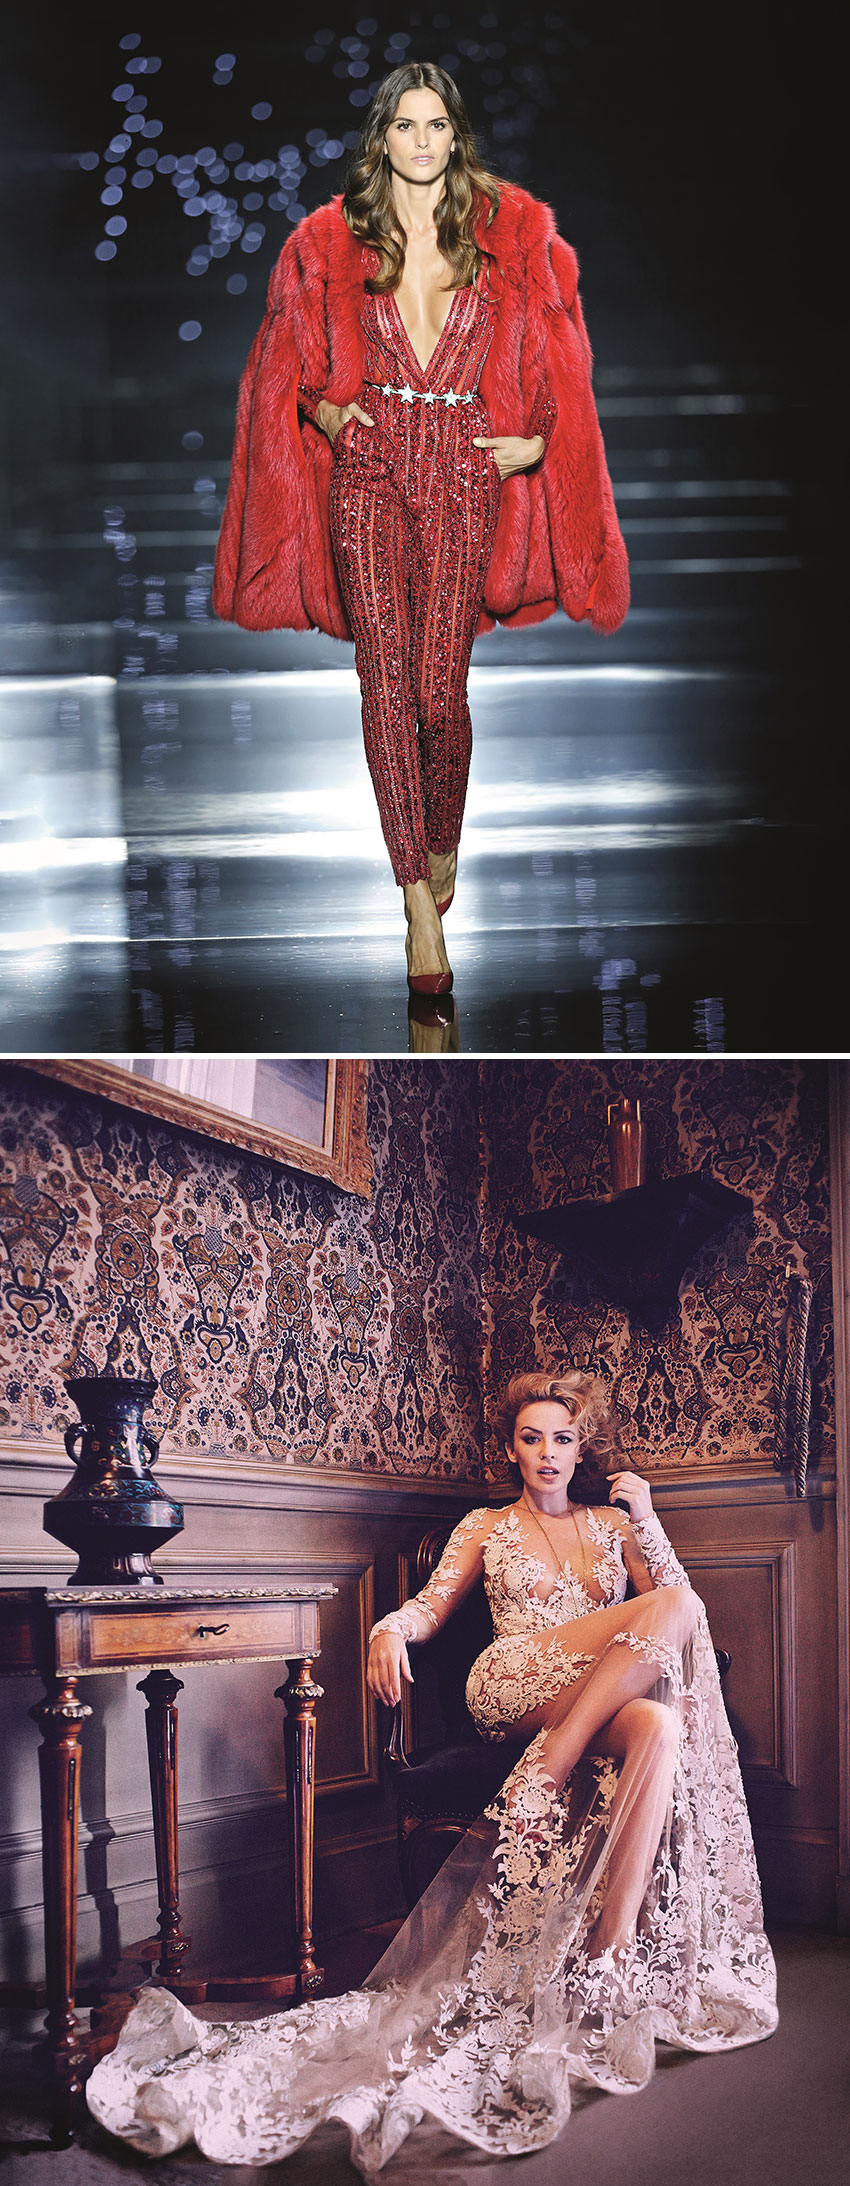 Model Isabel Goulart in the Zuhair Murad catwalk and Singer Kylie Minogue waering a dress from Zuhair Murad's Jardin d'Eden couture collection featured in Perfect Wedding Magazine